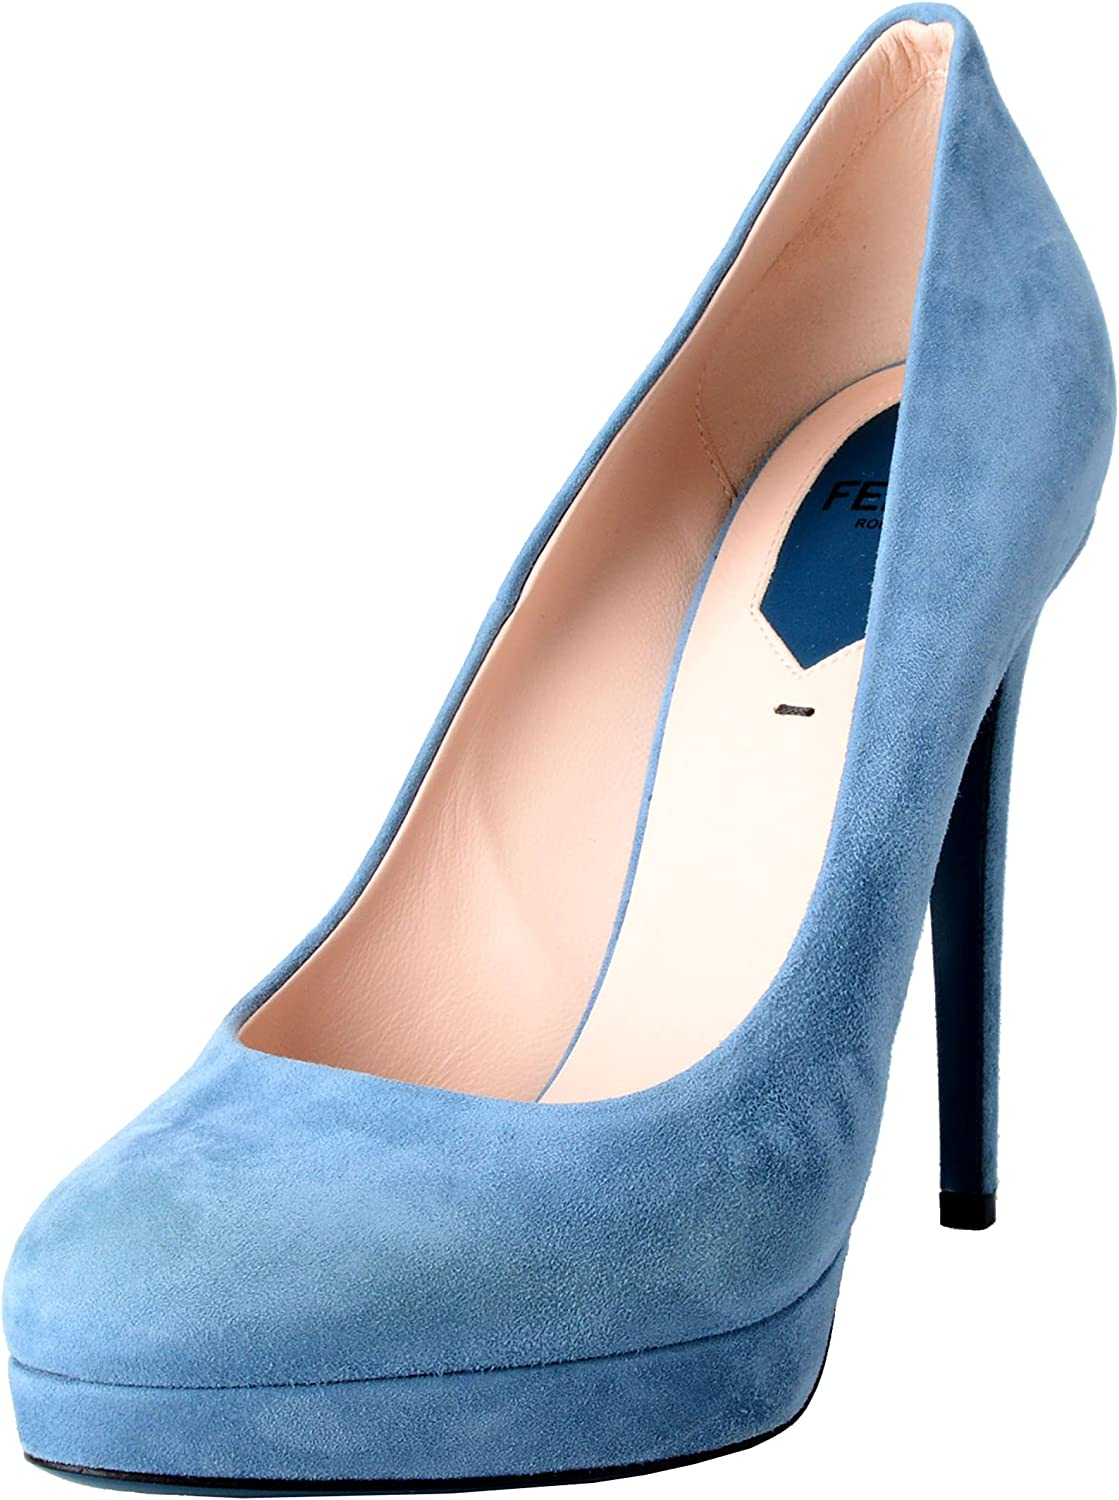 Fendi Women's Suede bluee Platform High Heels Pumps shoes